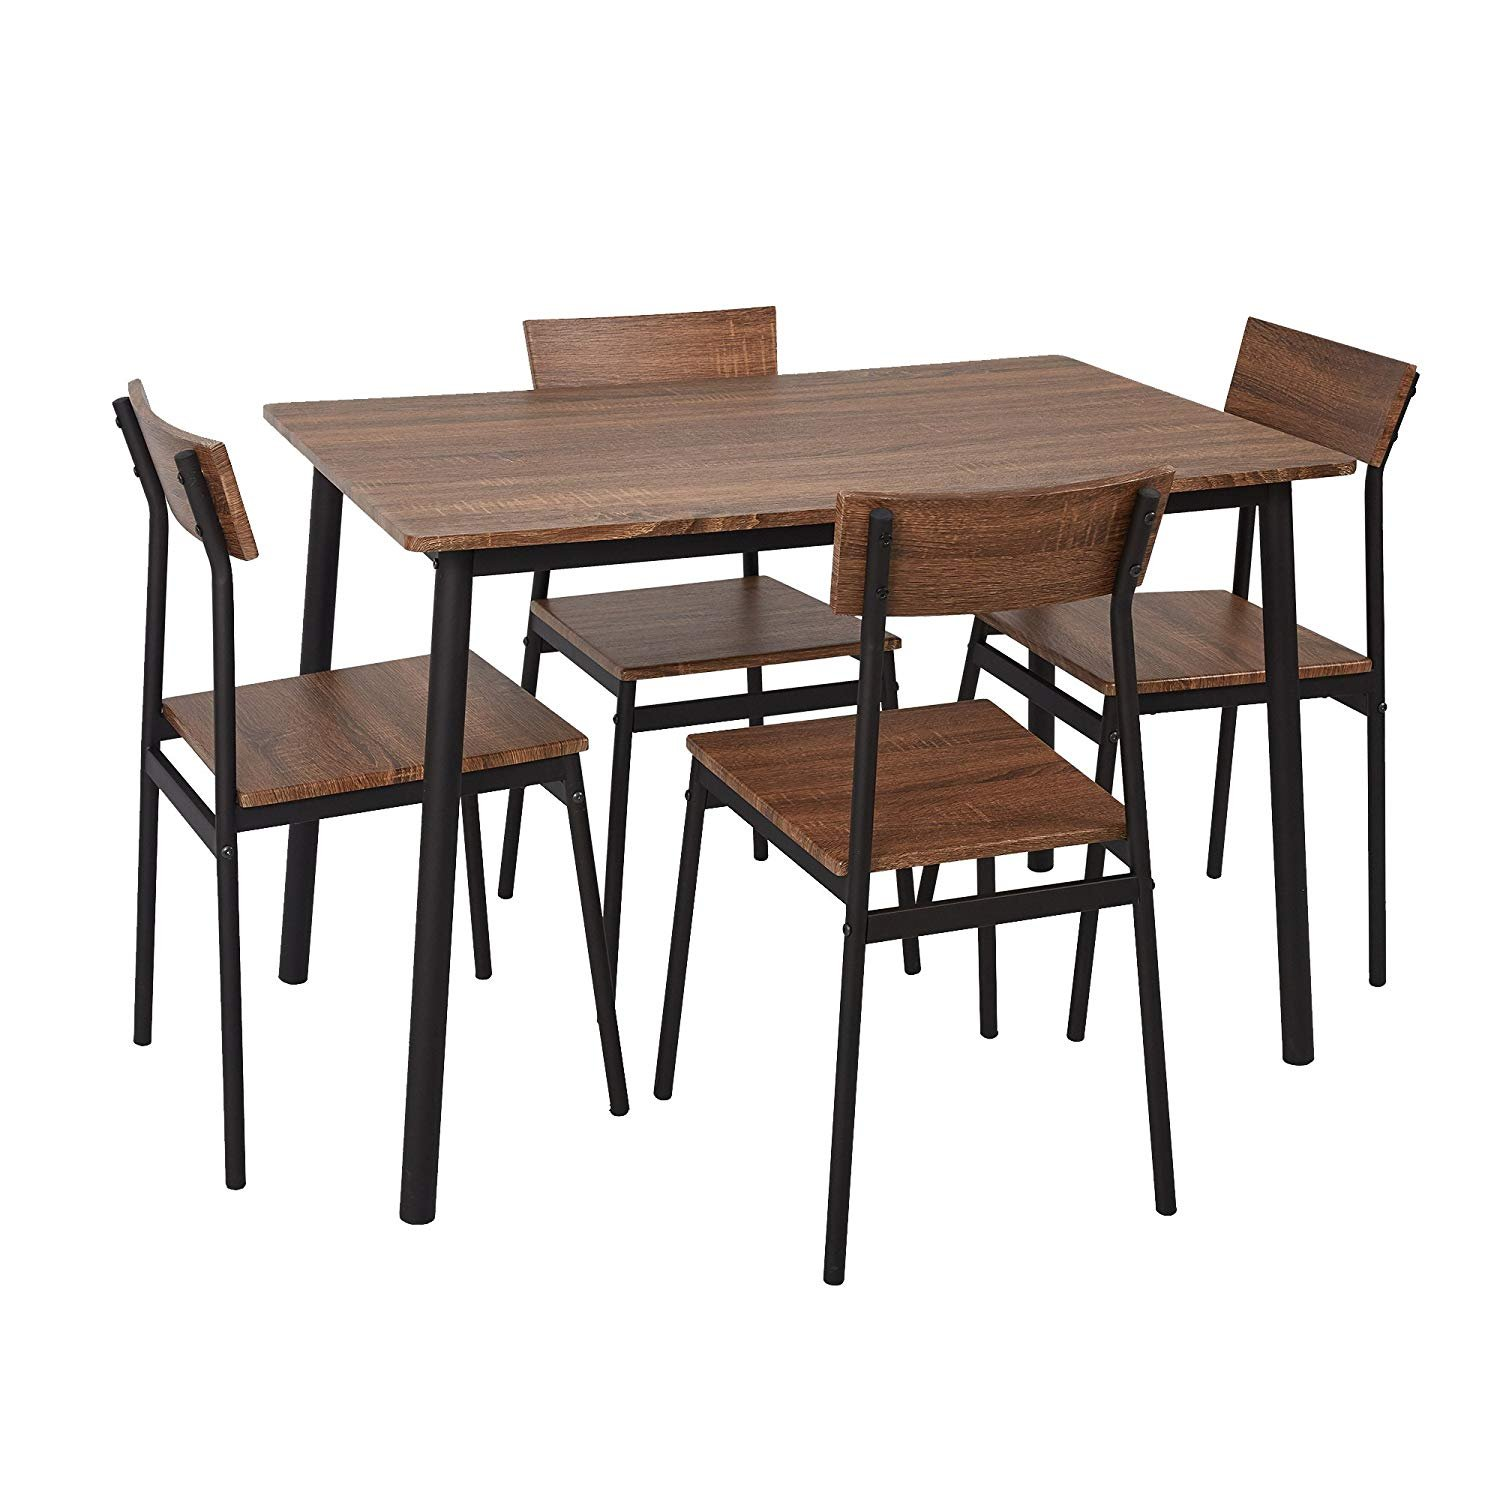 5 Piece Wood Dining Table Set Home